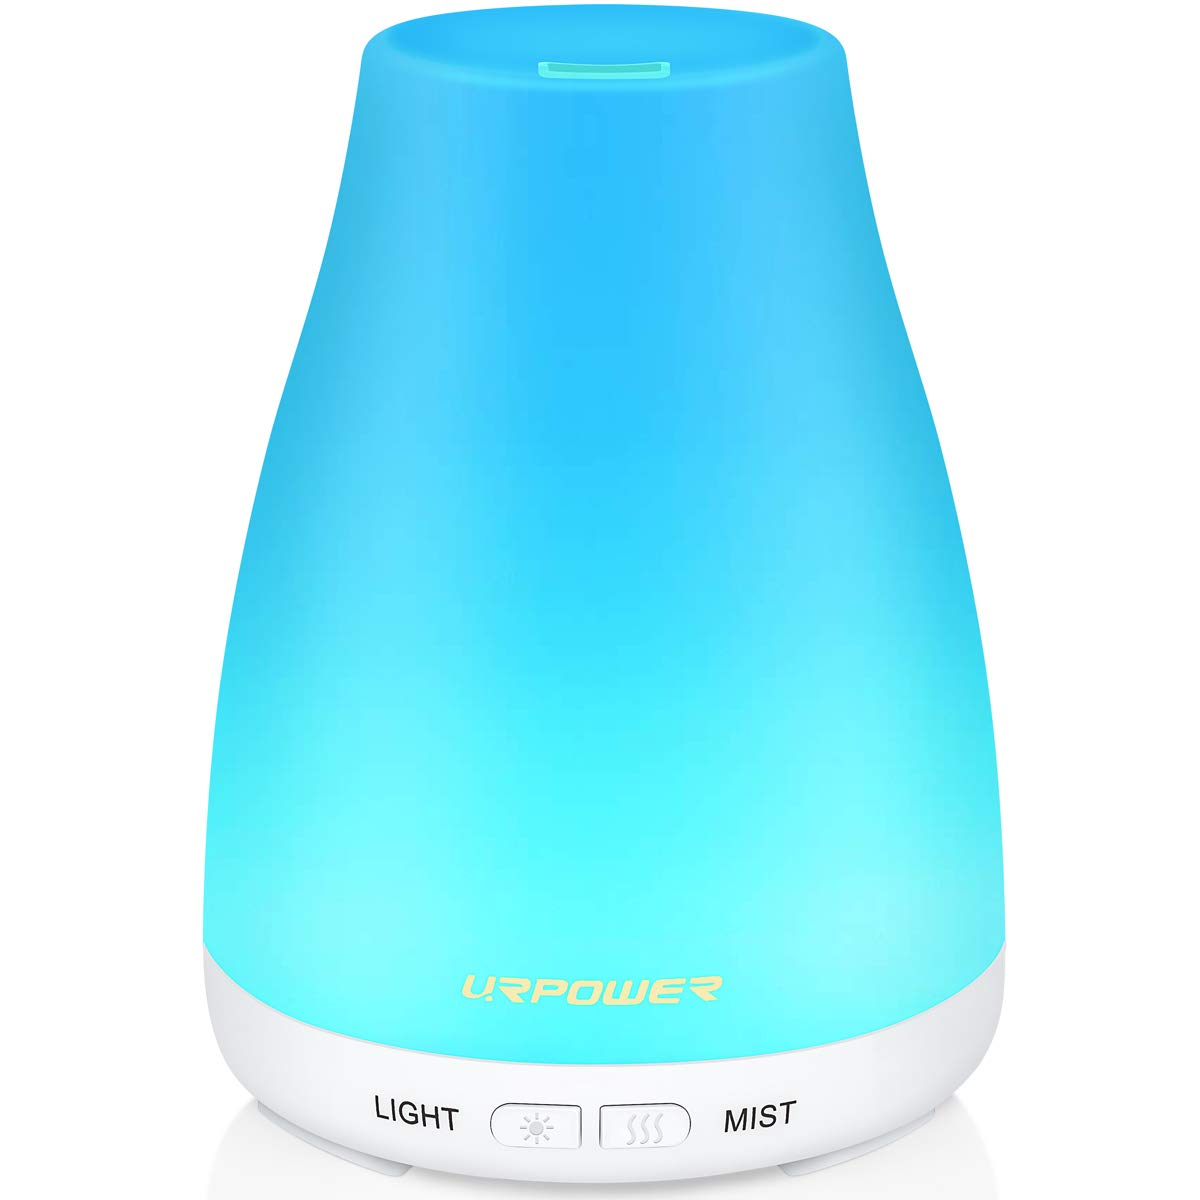 Best Oil Diffuser for your home or office to provide healing, healthy benefits of therapeutic, pure oils.